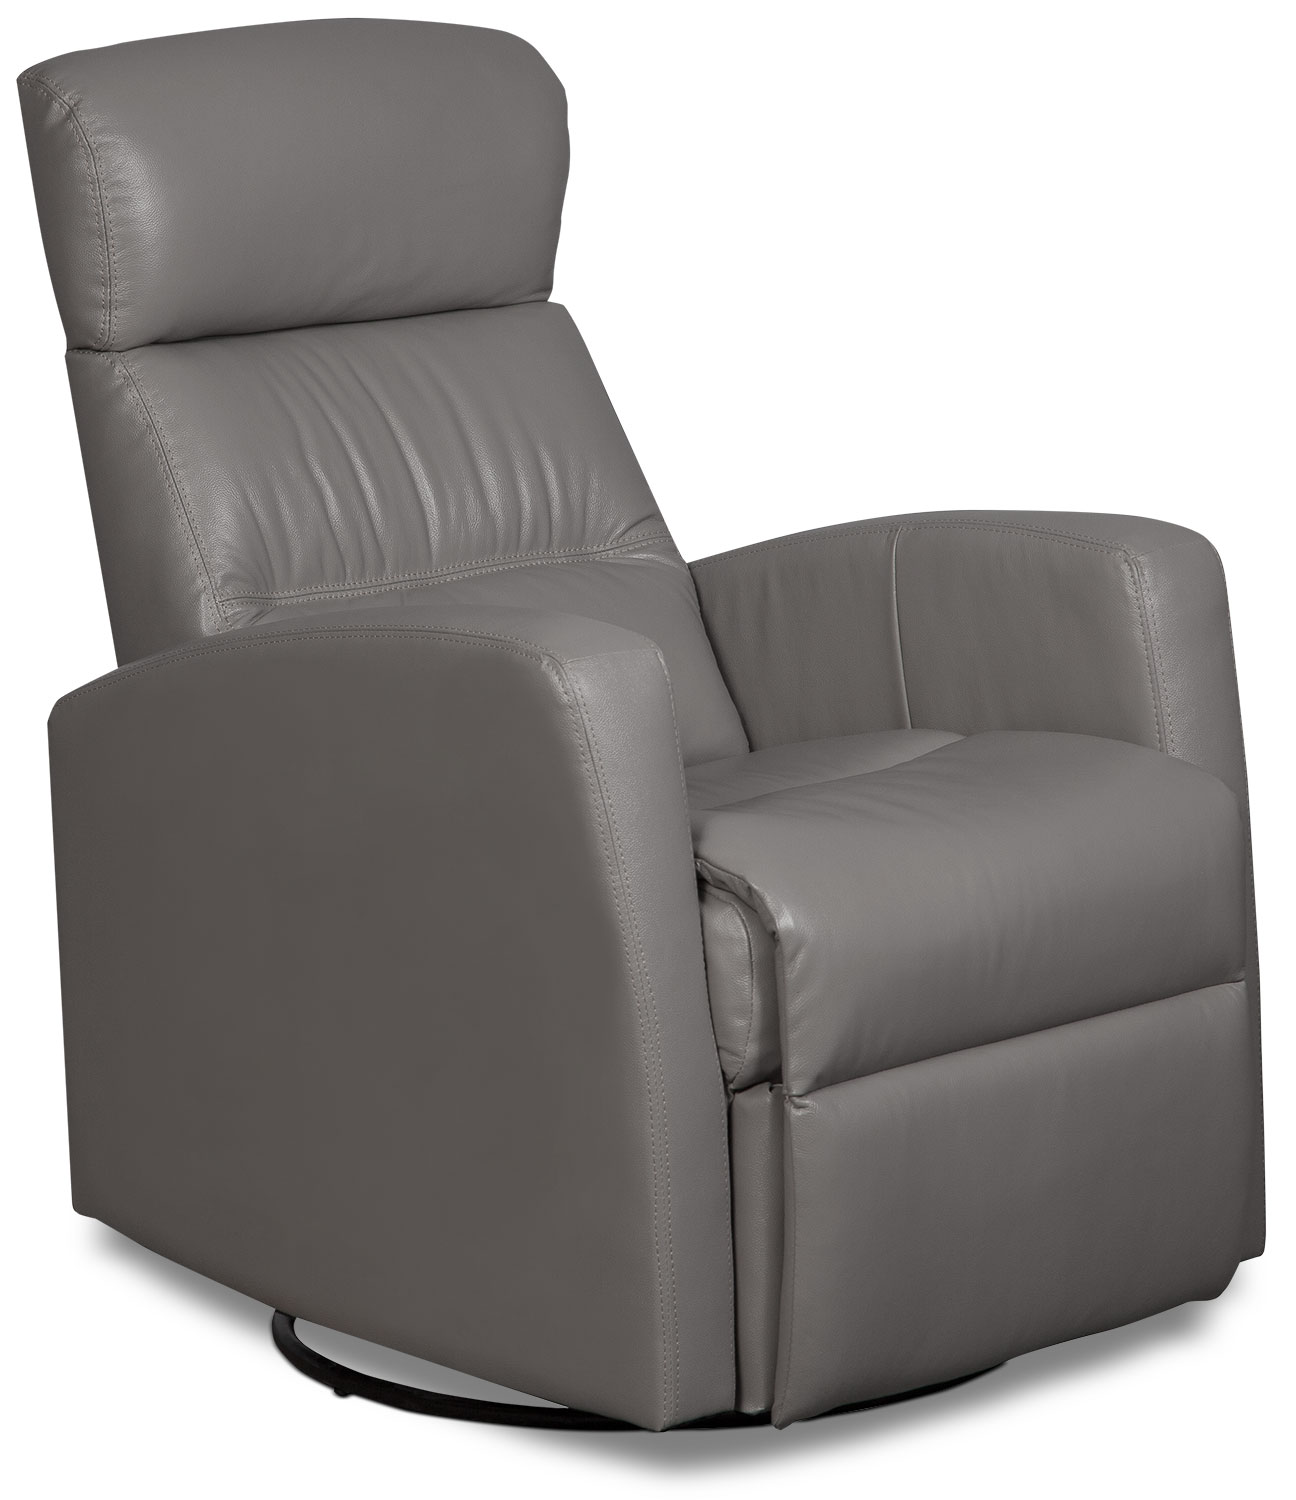 Penny Genuine Leather Swivel Rocker Reclining Chair – Light Grey